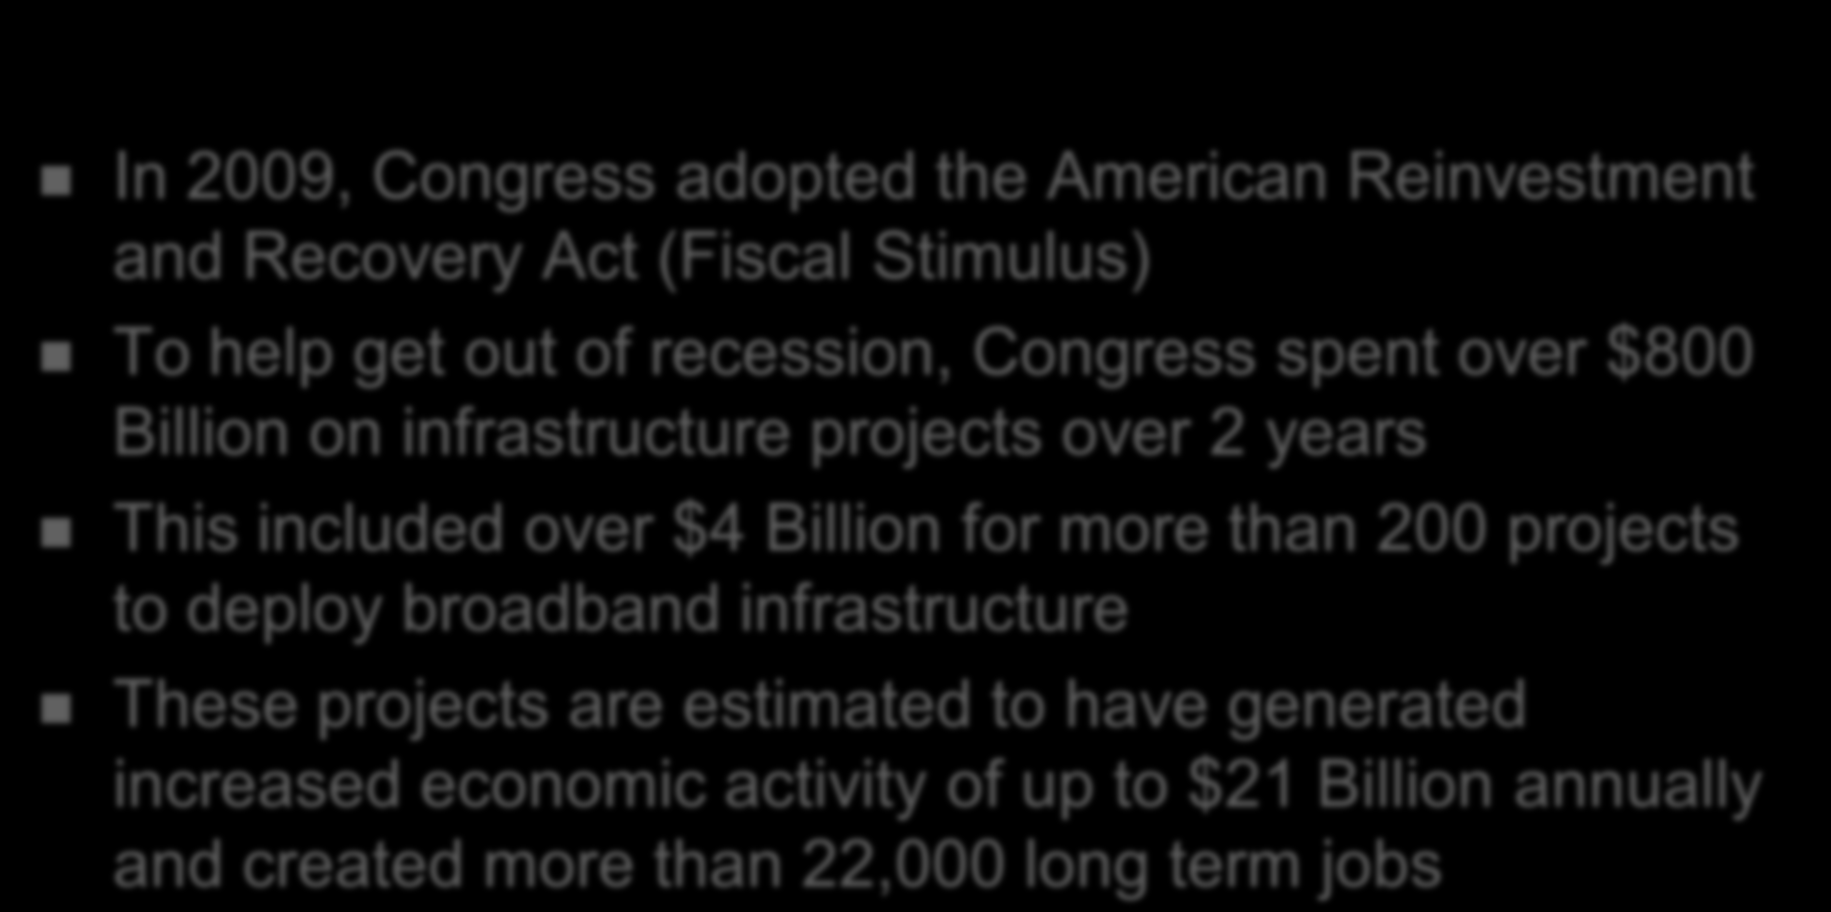 Additional Broadband Support In 2009, Congress adopted the American Reinvestment and Recovery Act (Fiscal Stimulus) To help get out of recession, Congress spent over $800 Billion on infrastructure